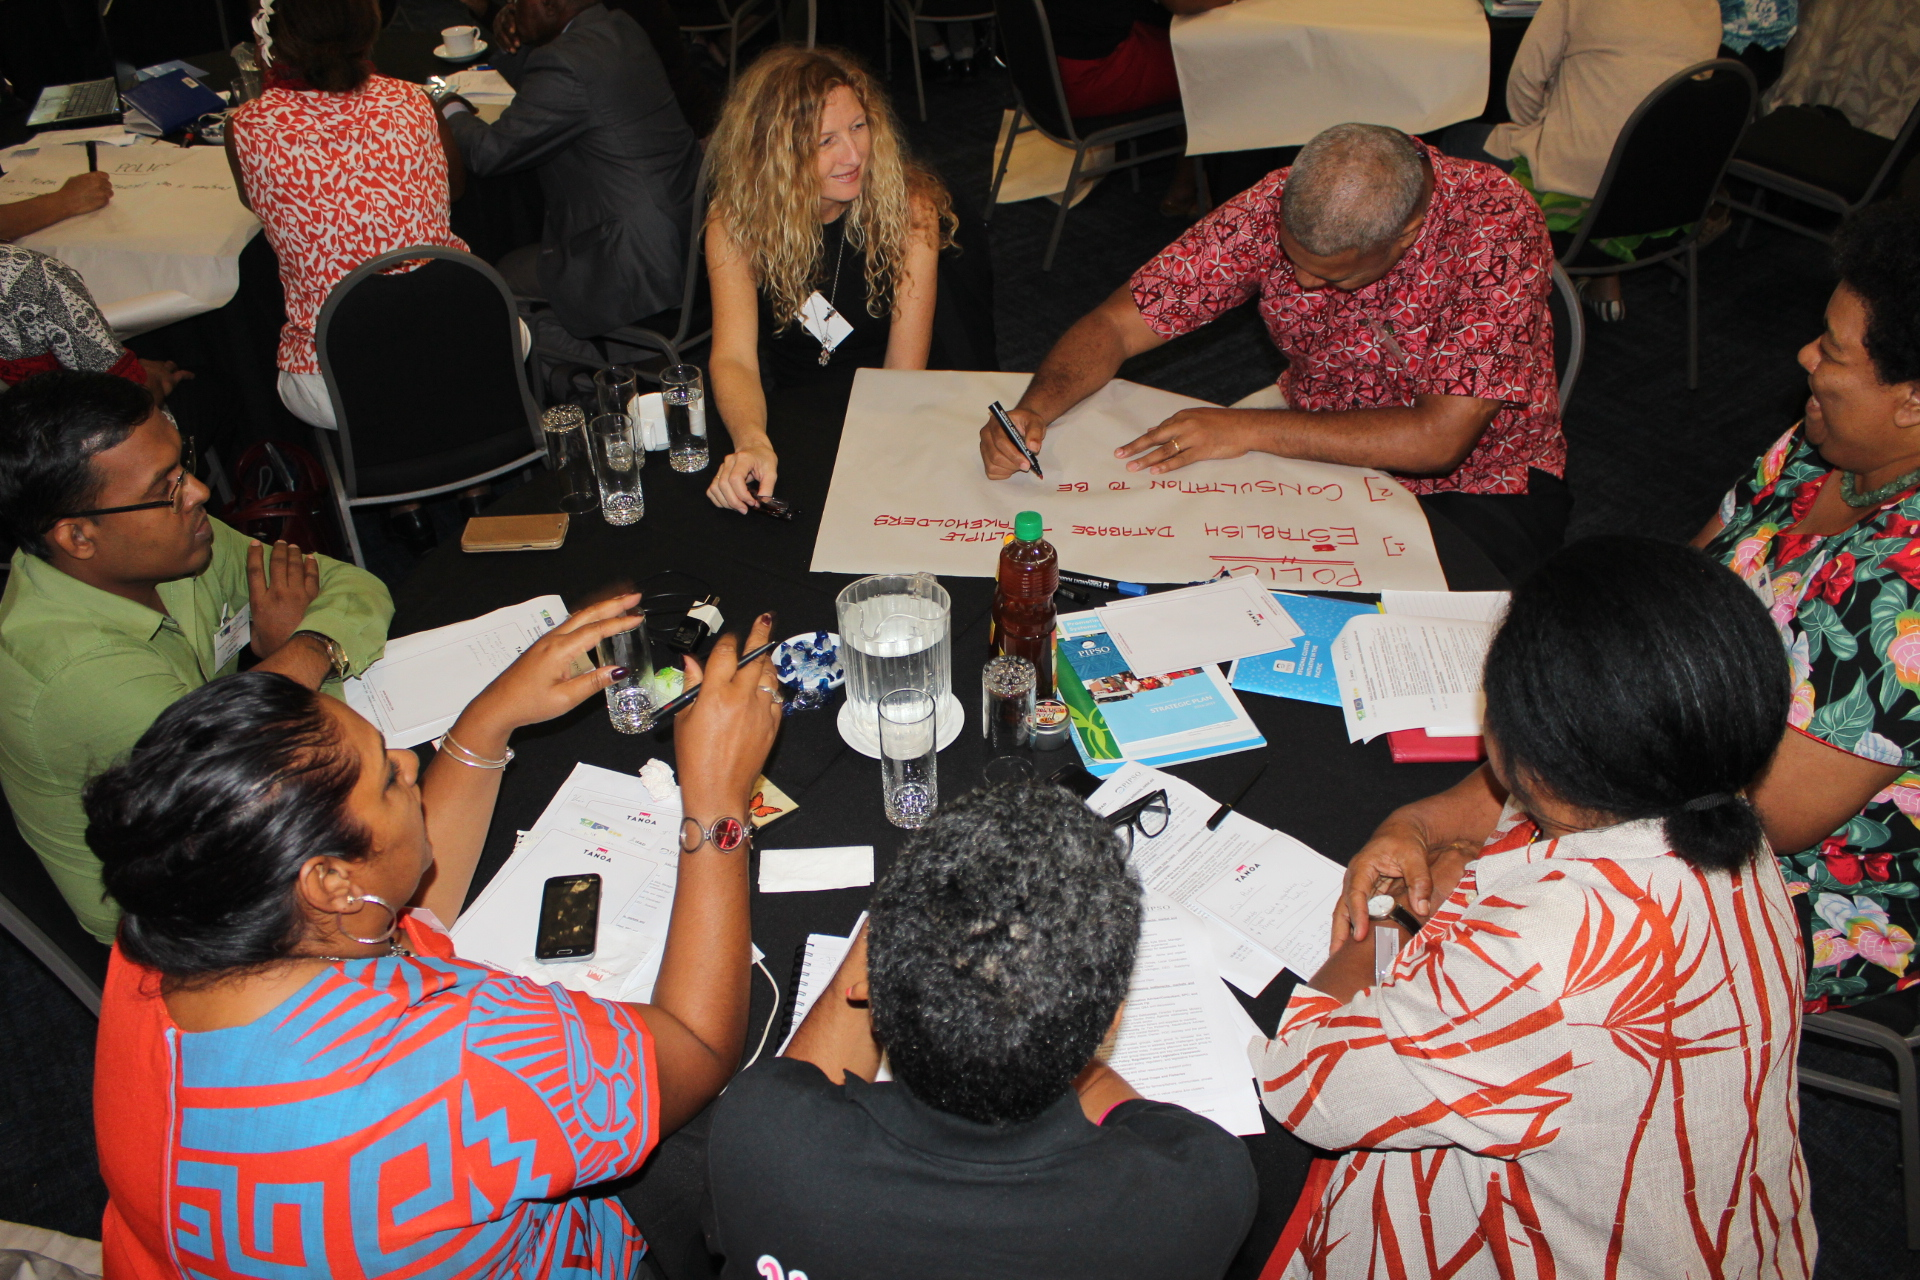 Participants discussing and suggesting strategies during roundtable exercises